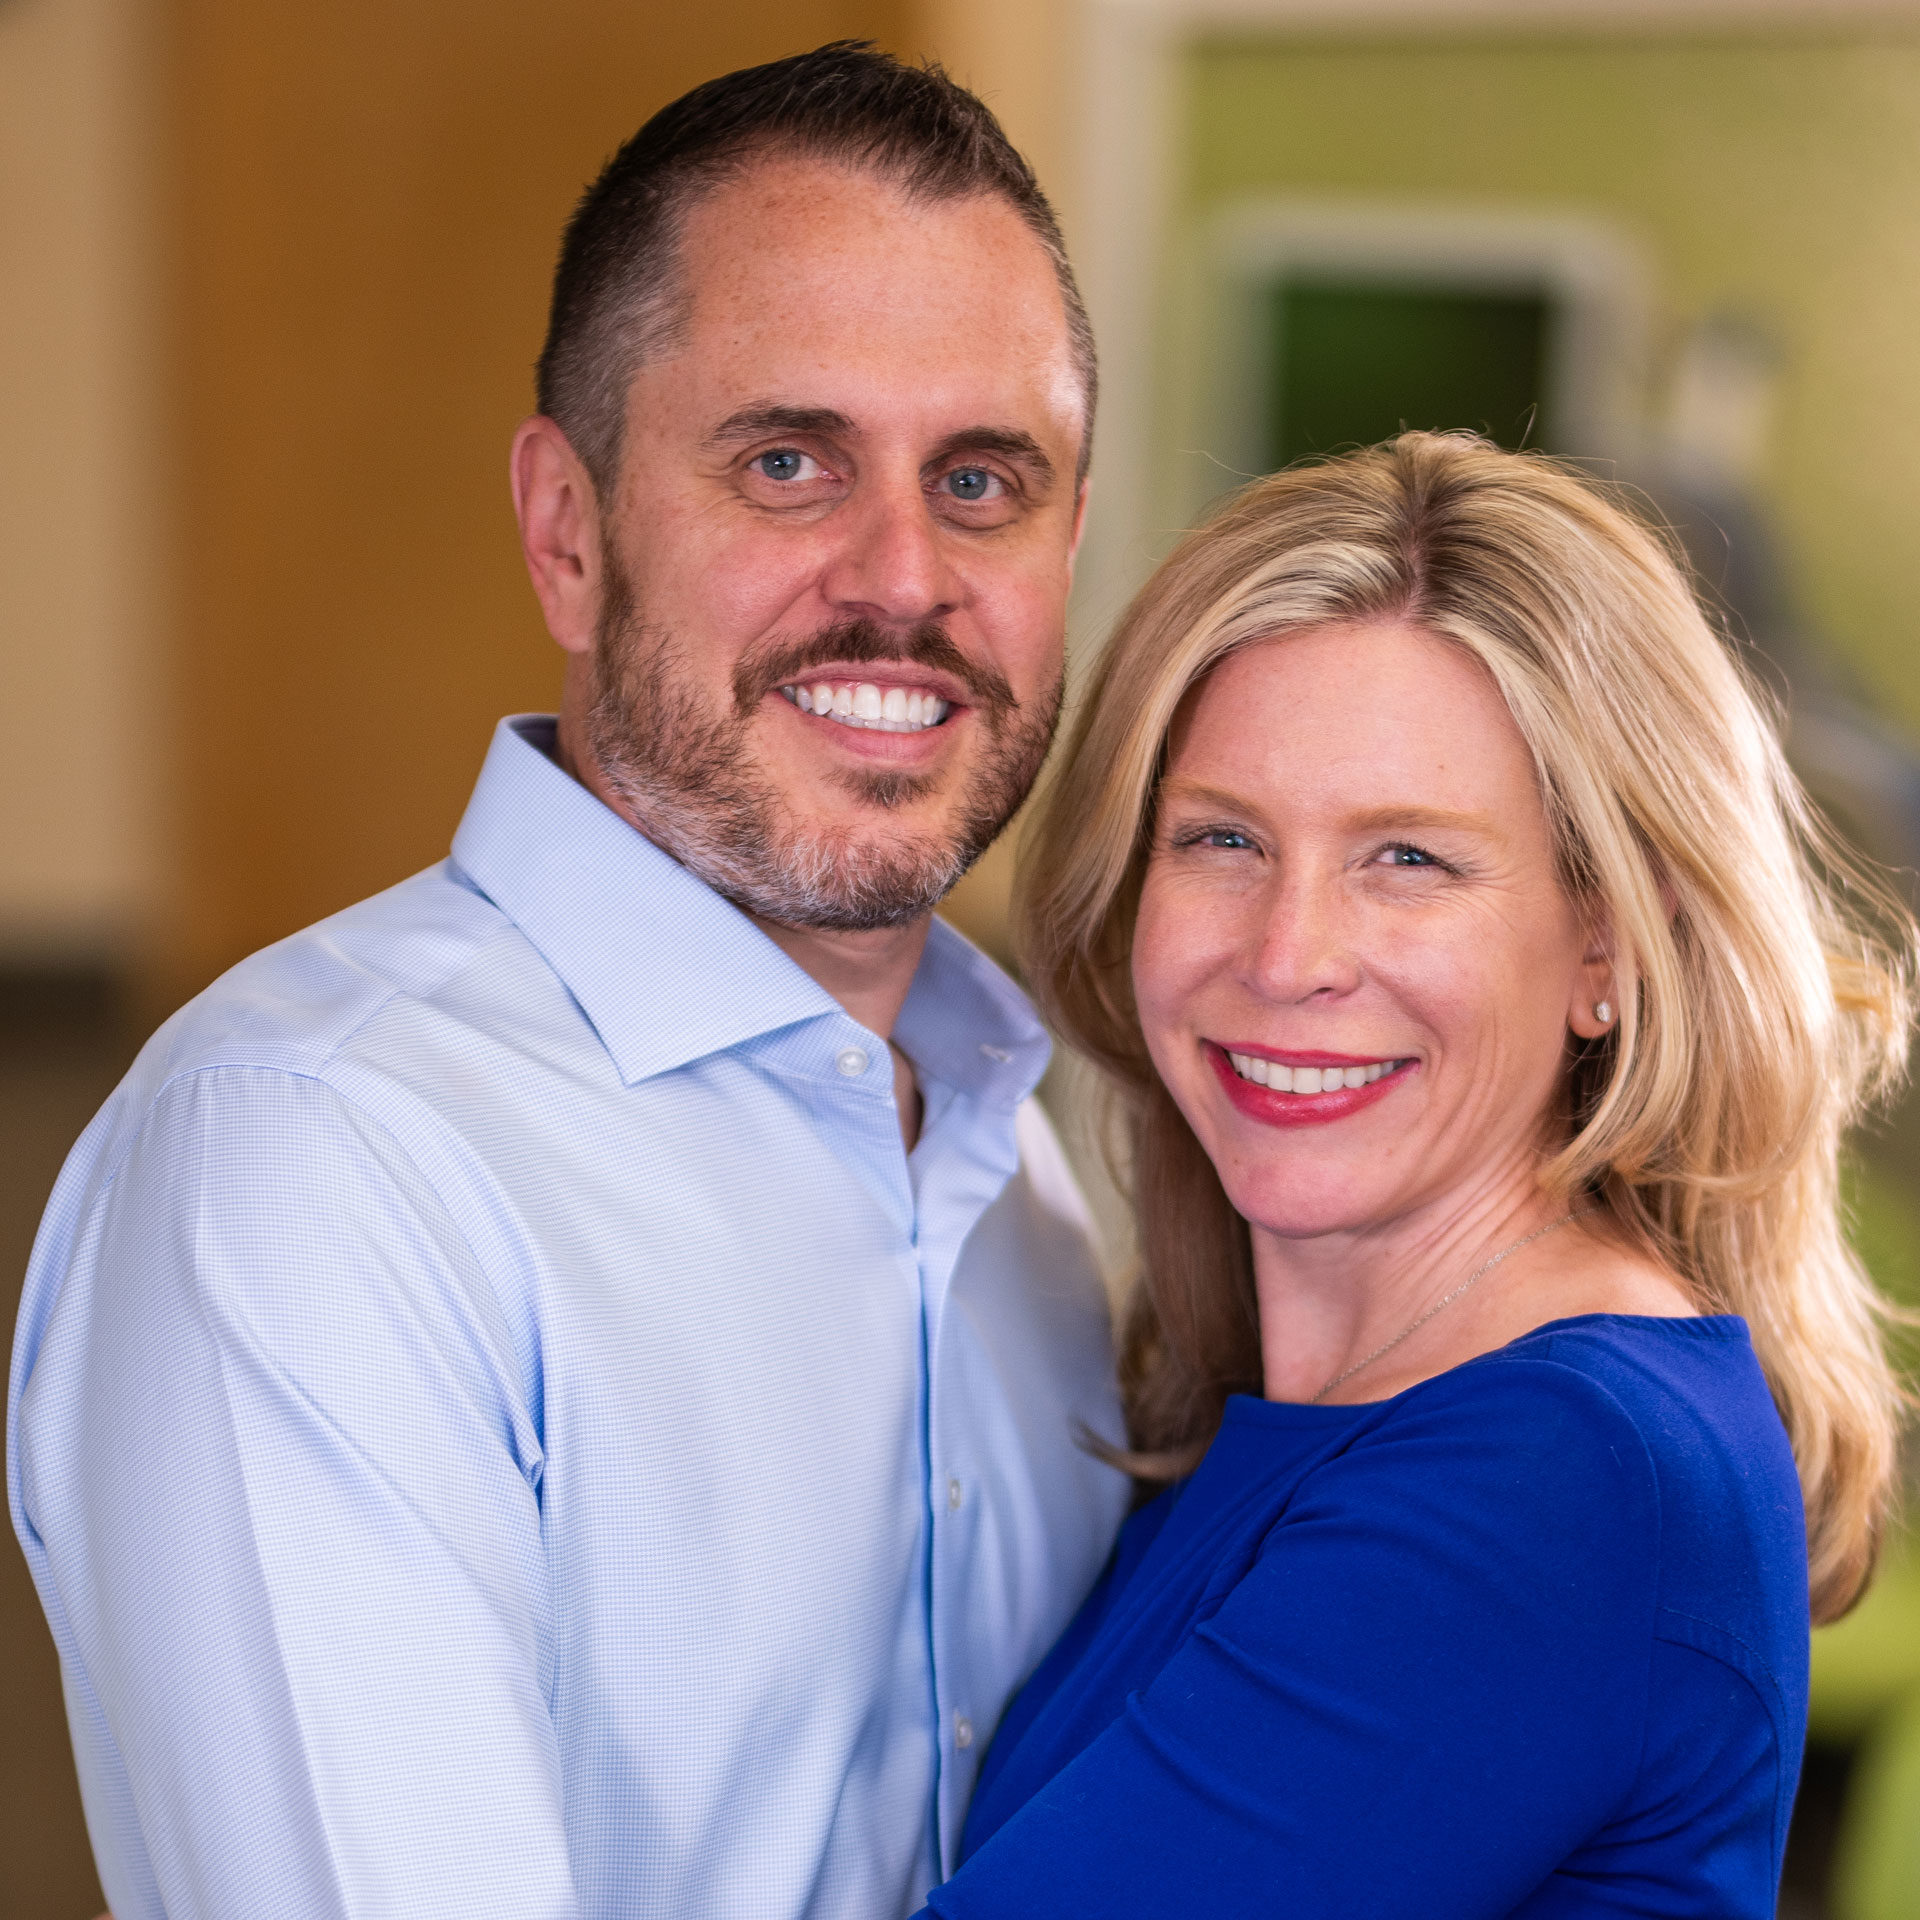 Dr. Matthew Dunn and Dr. Courtney Dunn